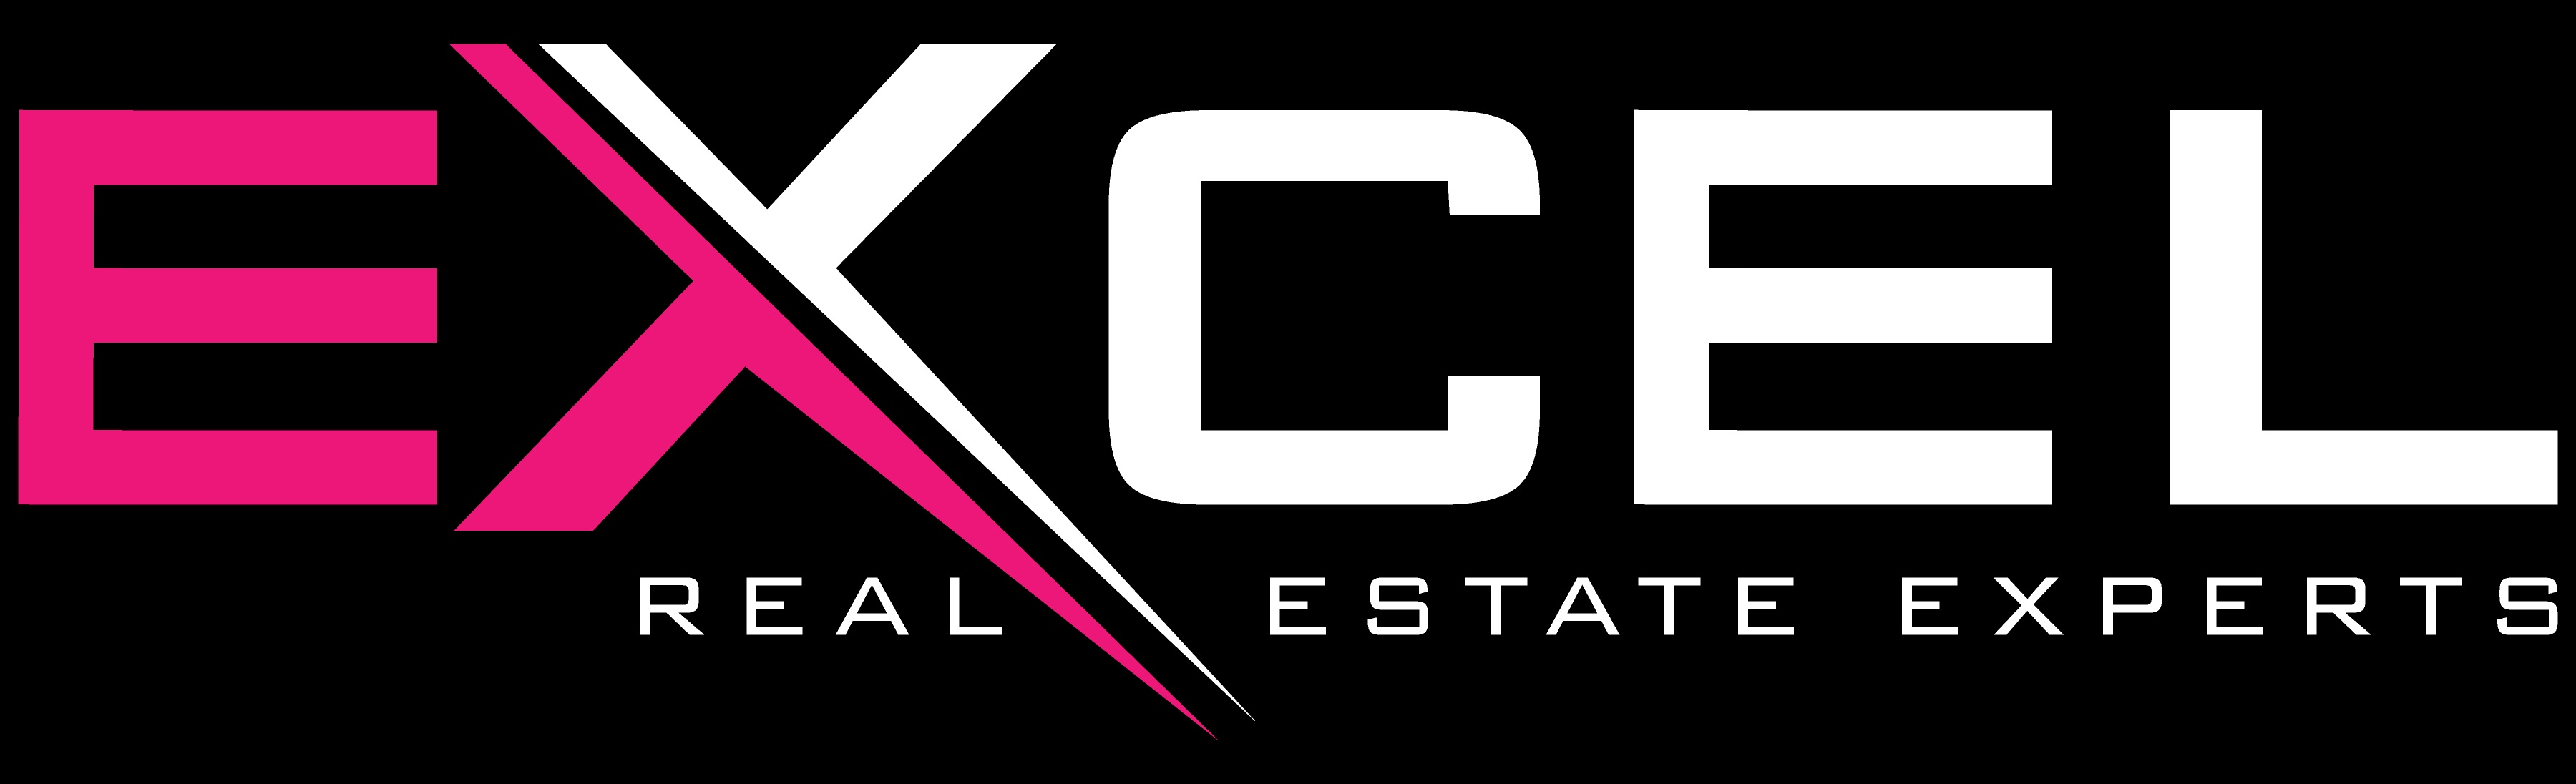 Excel Real Estate Experts logo